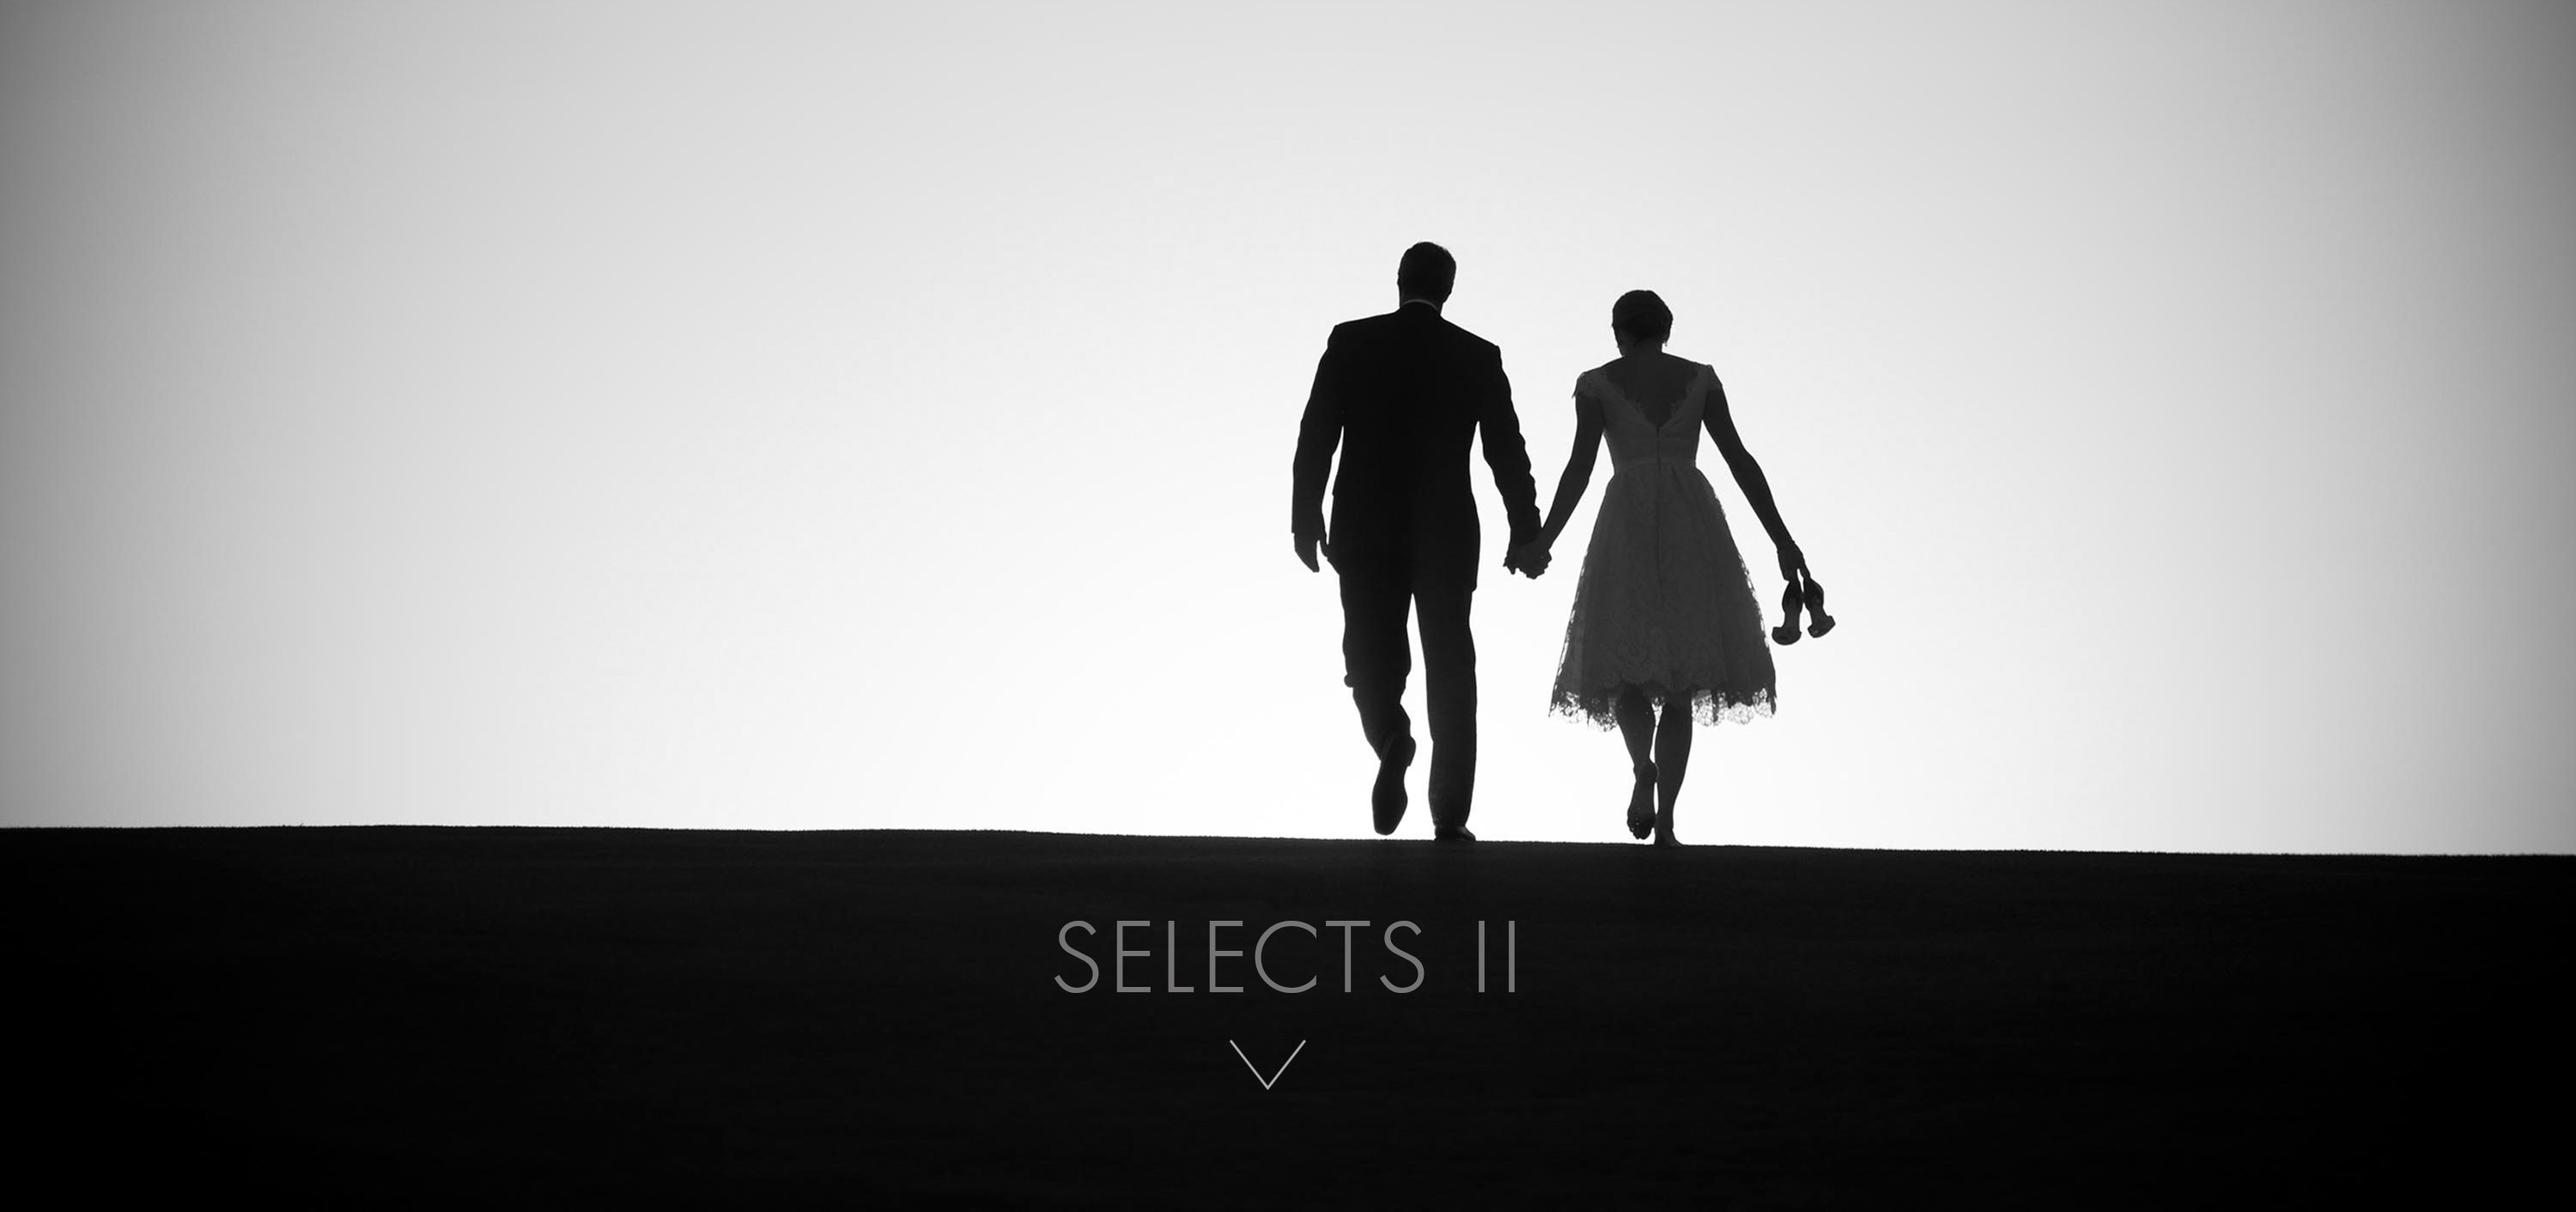 Silhouettes at Cypress Country Club Wedding at Pebble Beach